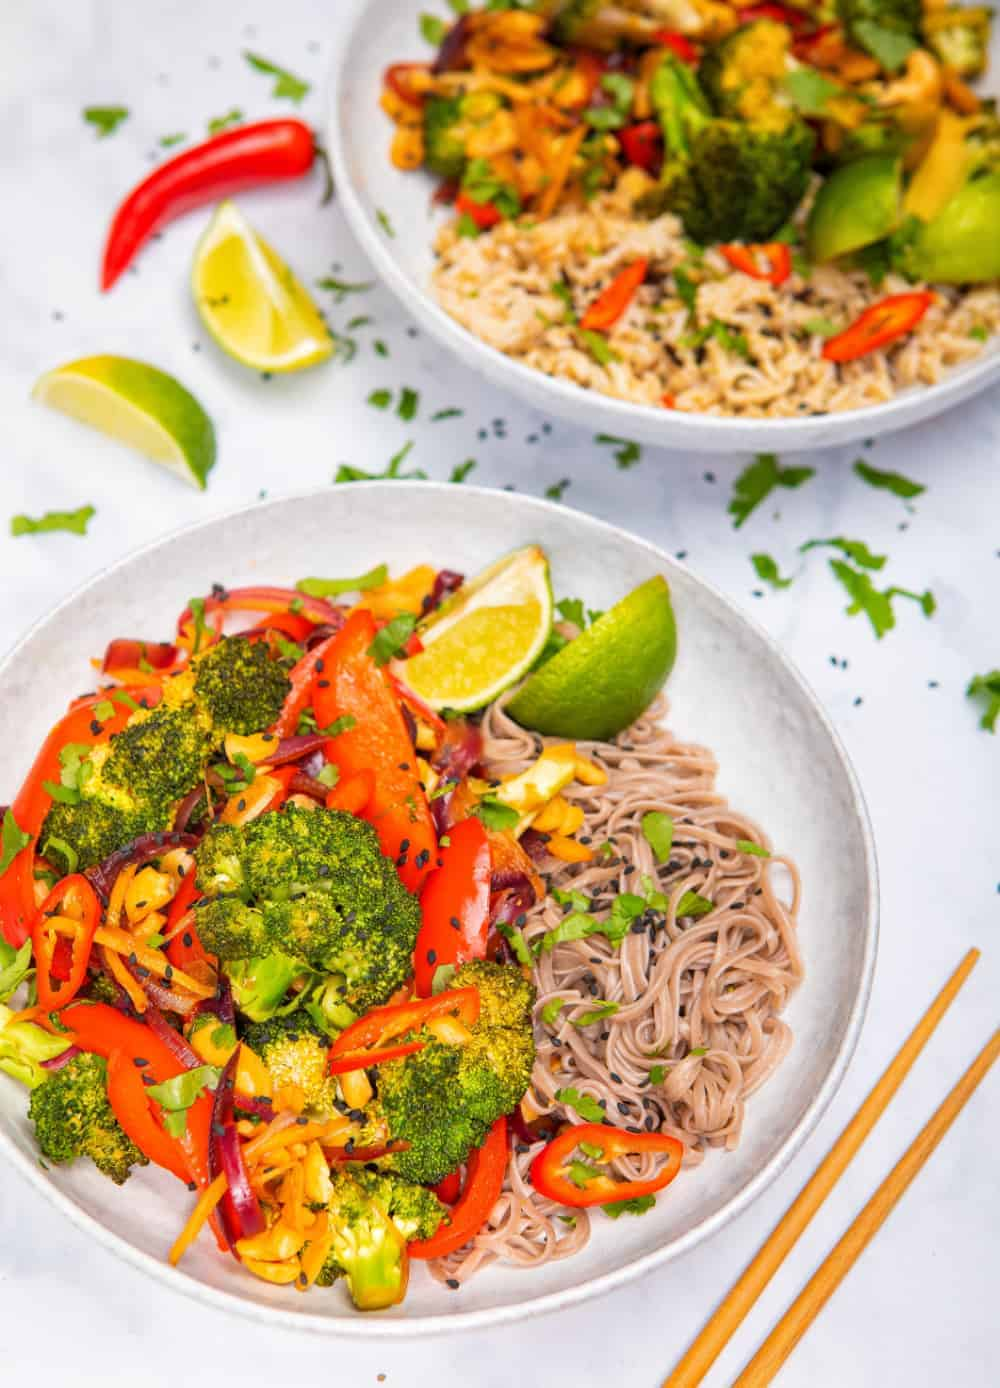 15 Minute Broccoli & Cashew Stir-Fry - front